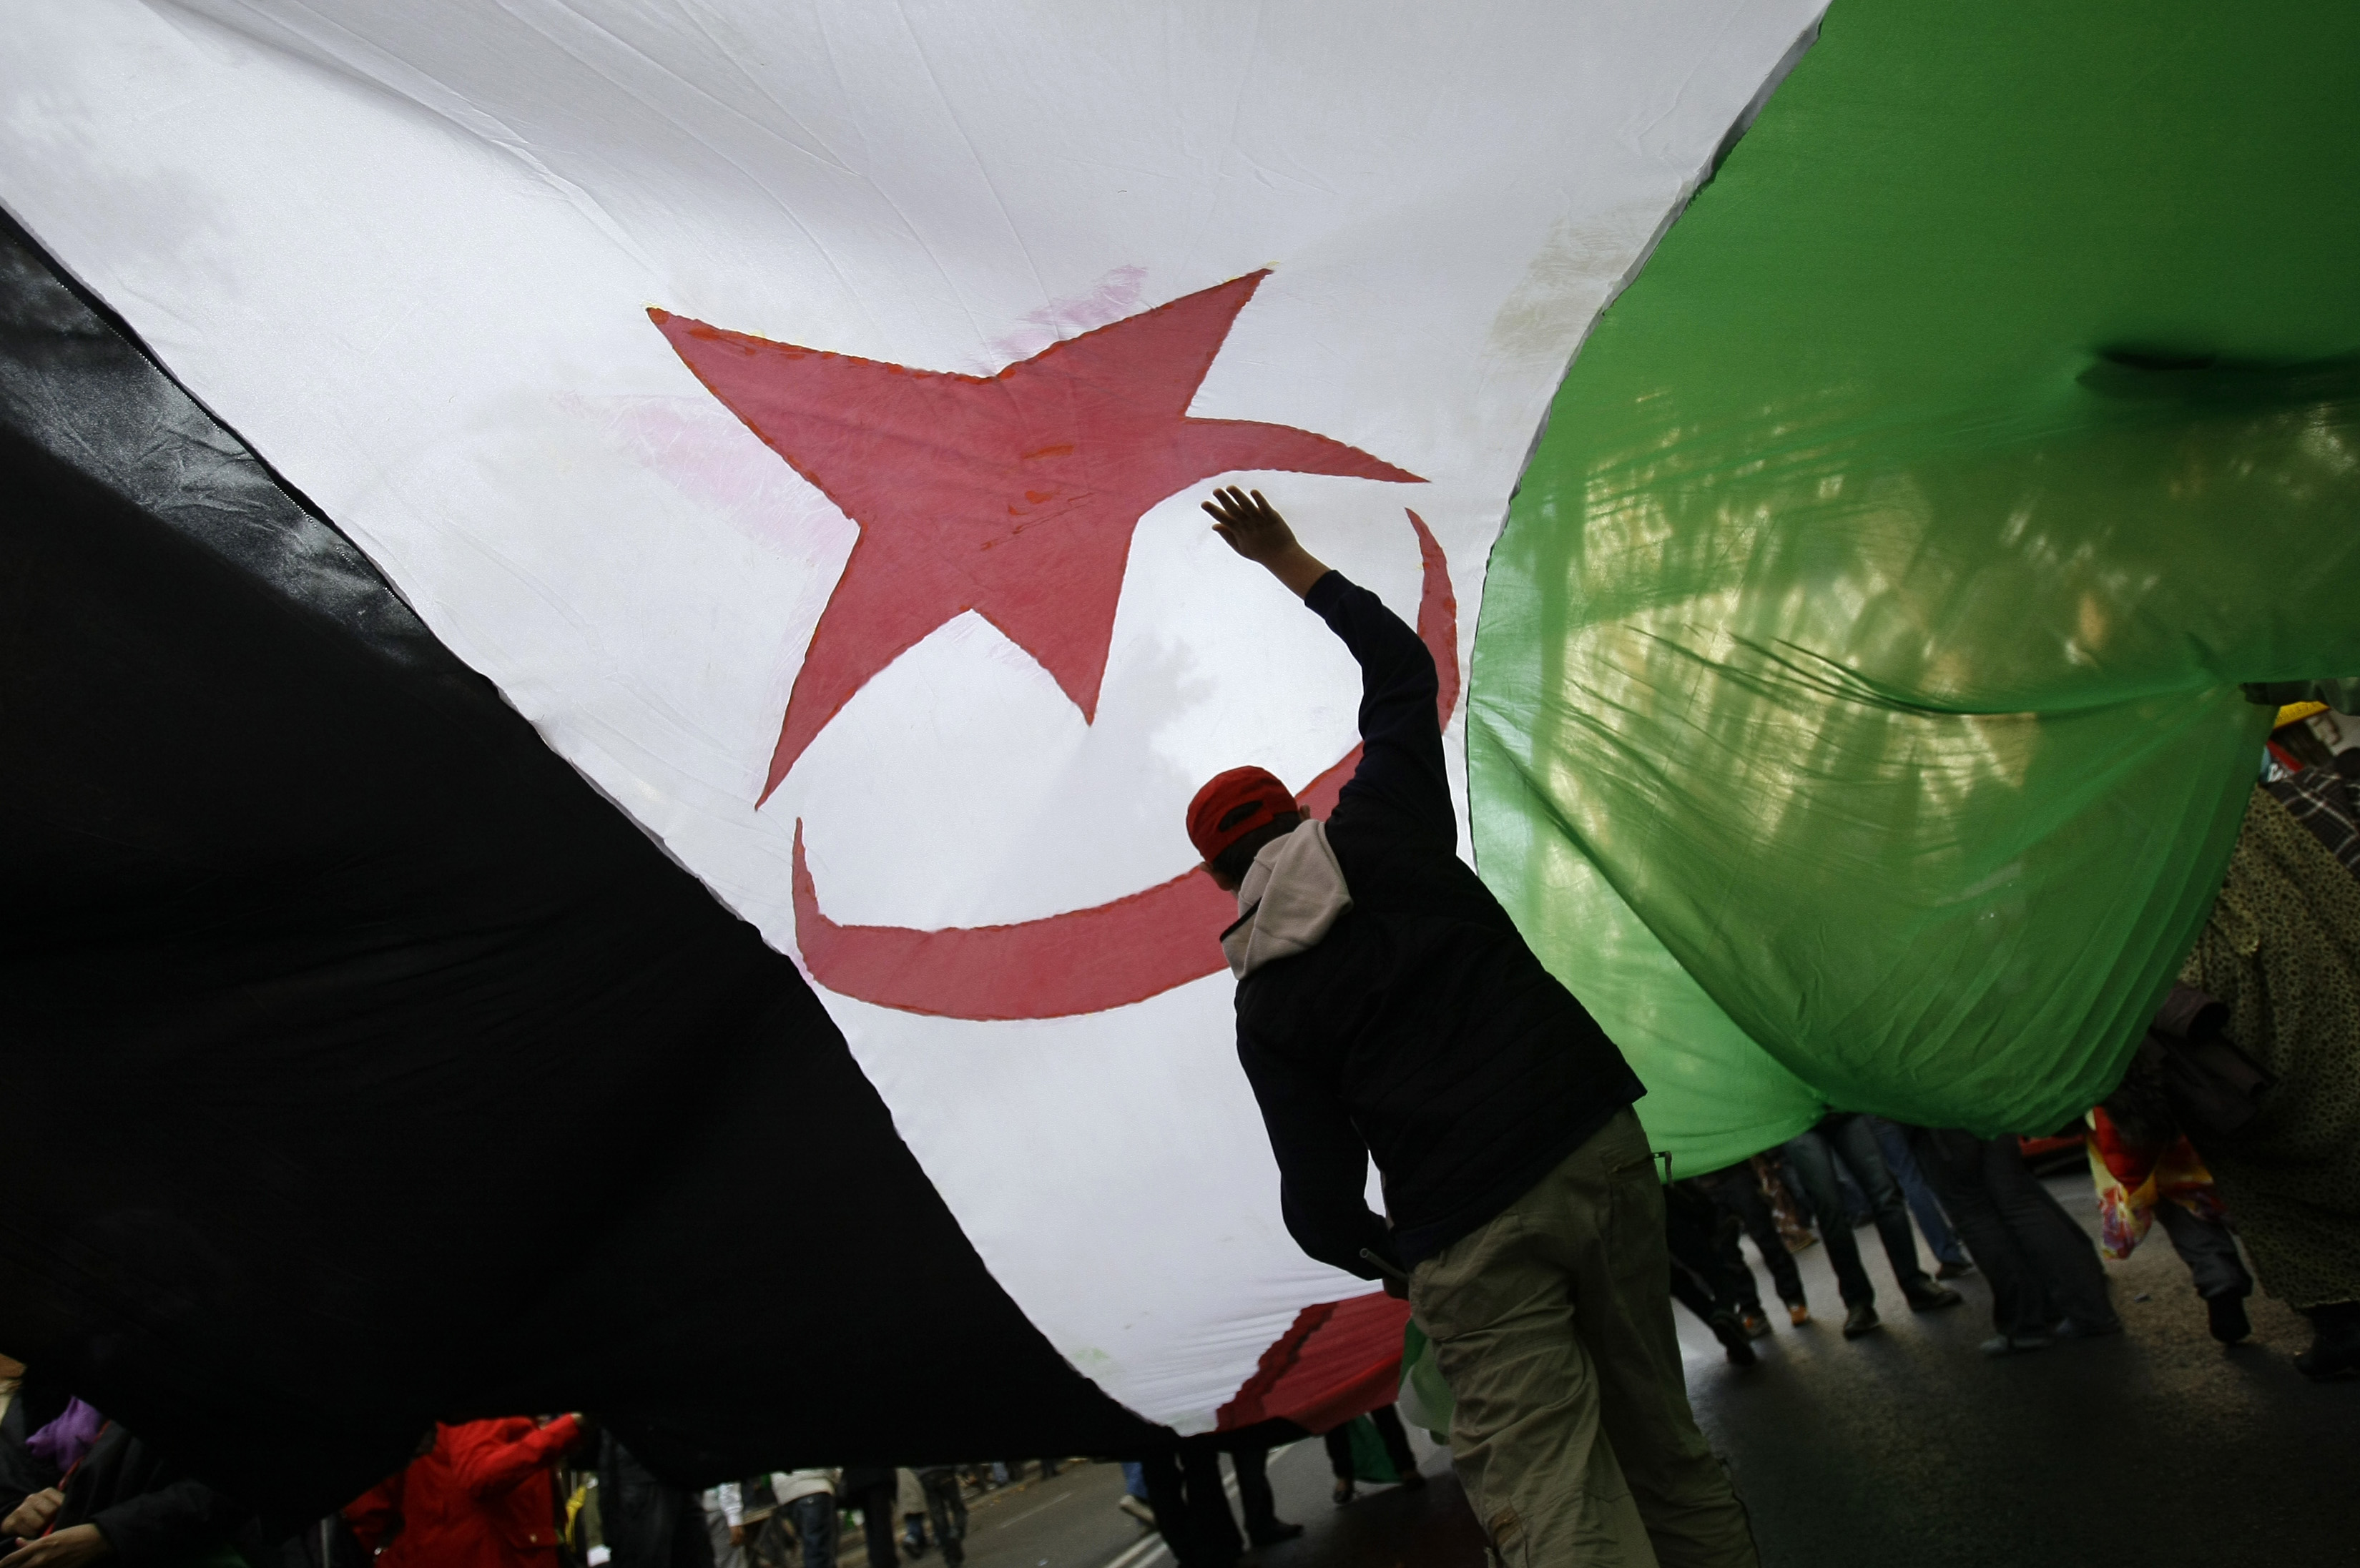 Protesters carry a Western Sahara flag during a demonstration in support of independence for Western Sahara in Madrid